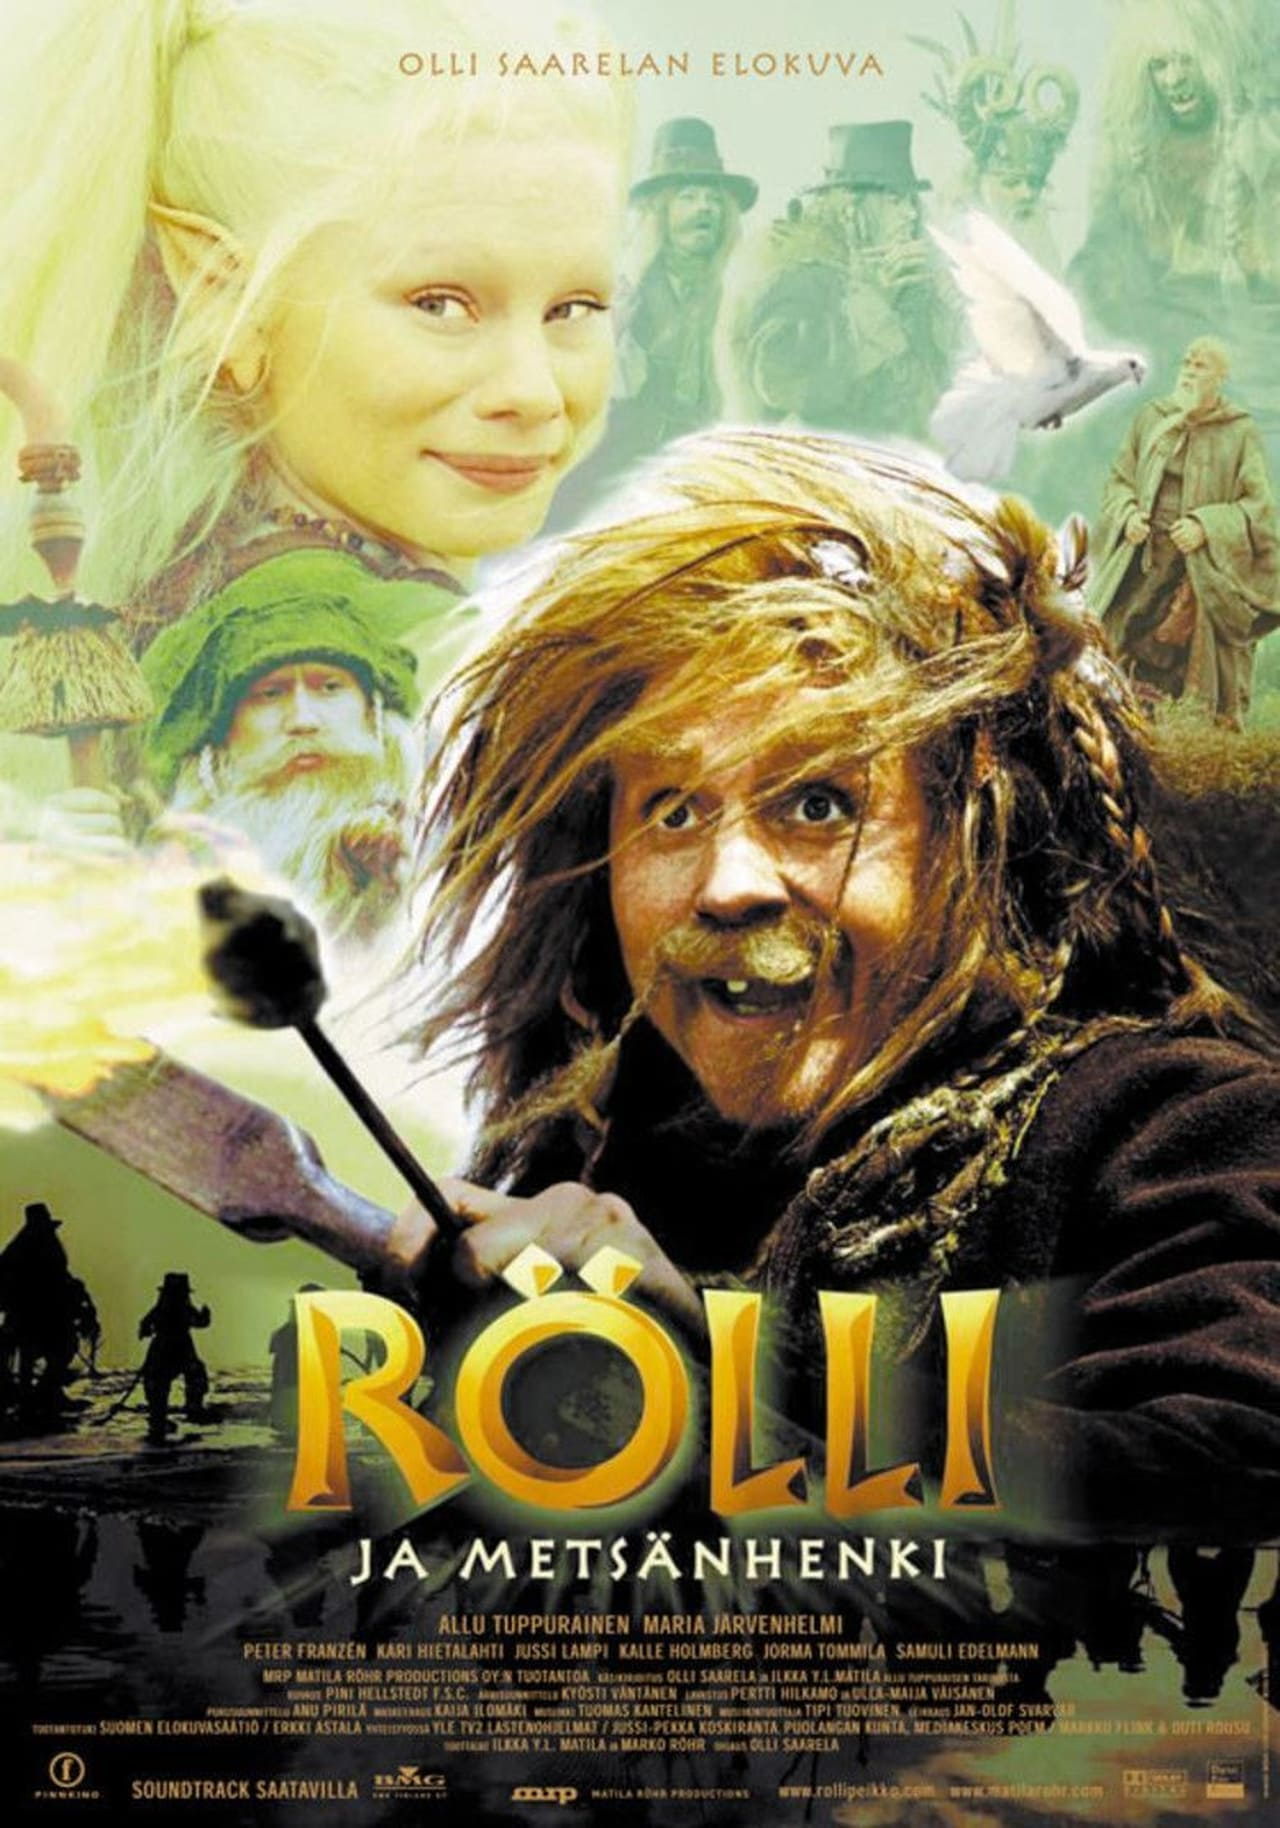 Rollo and the Spirit of the Woods